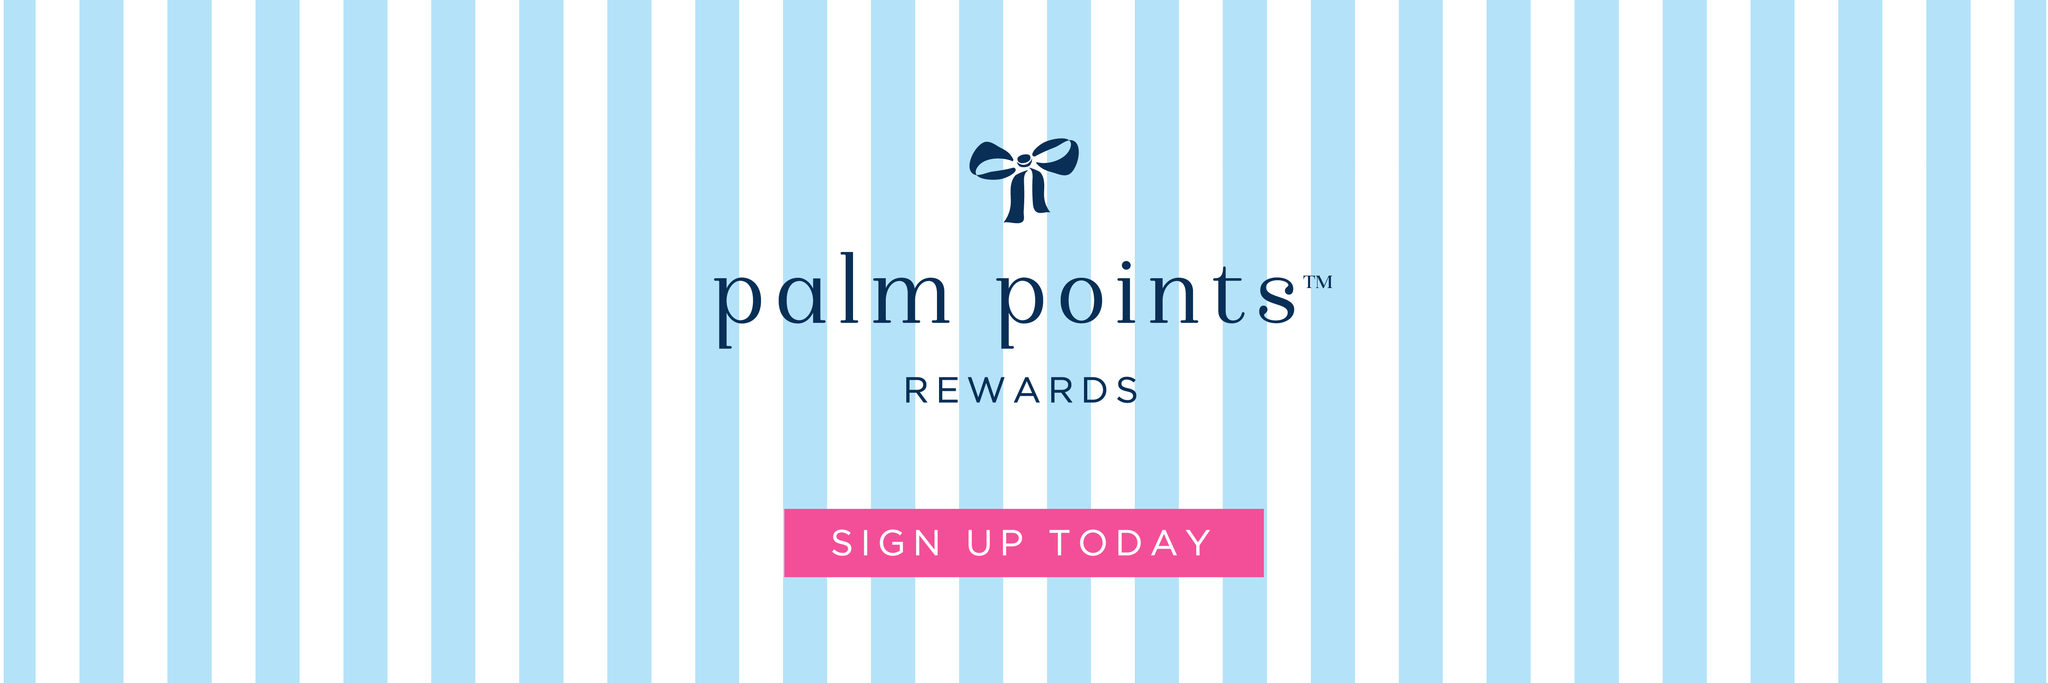 palm points™ loyalty rewards